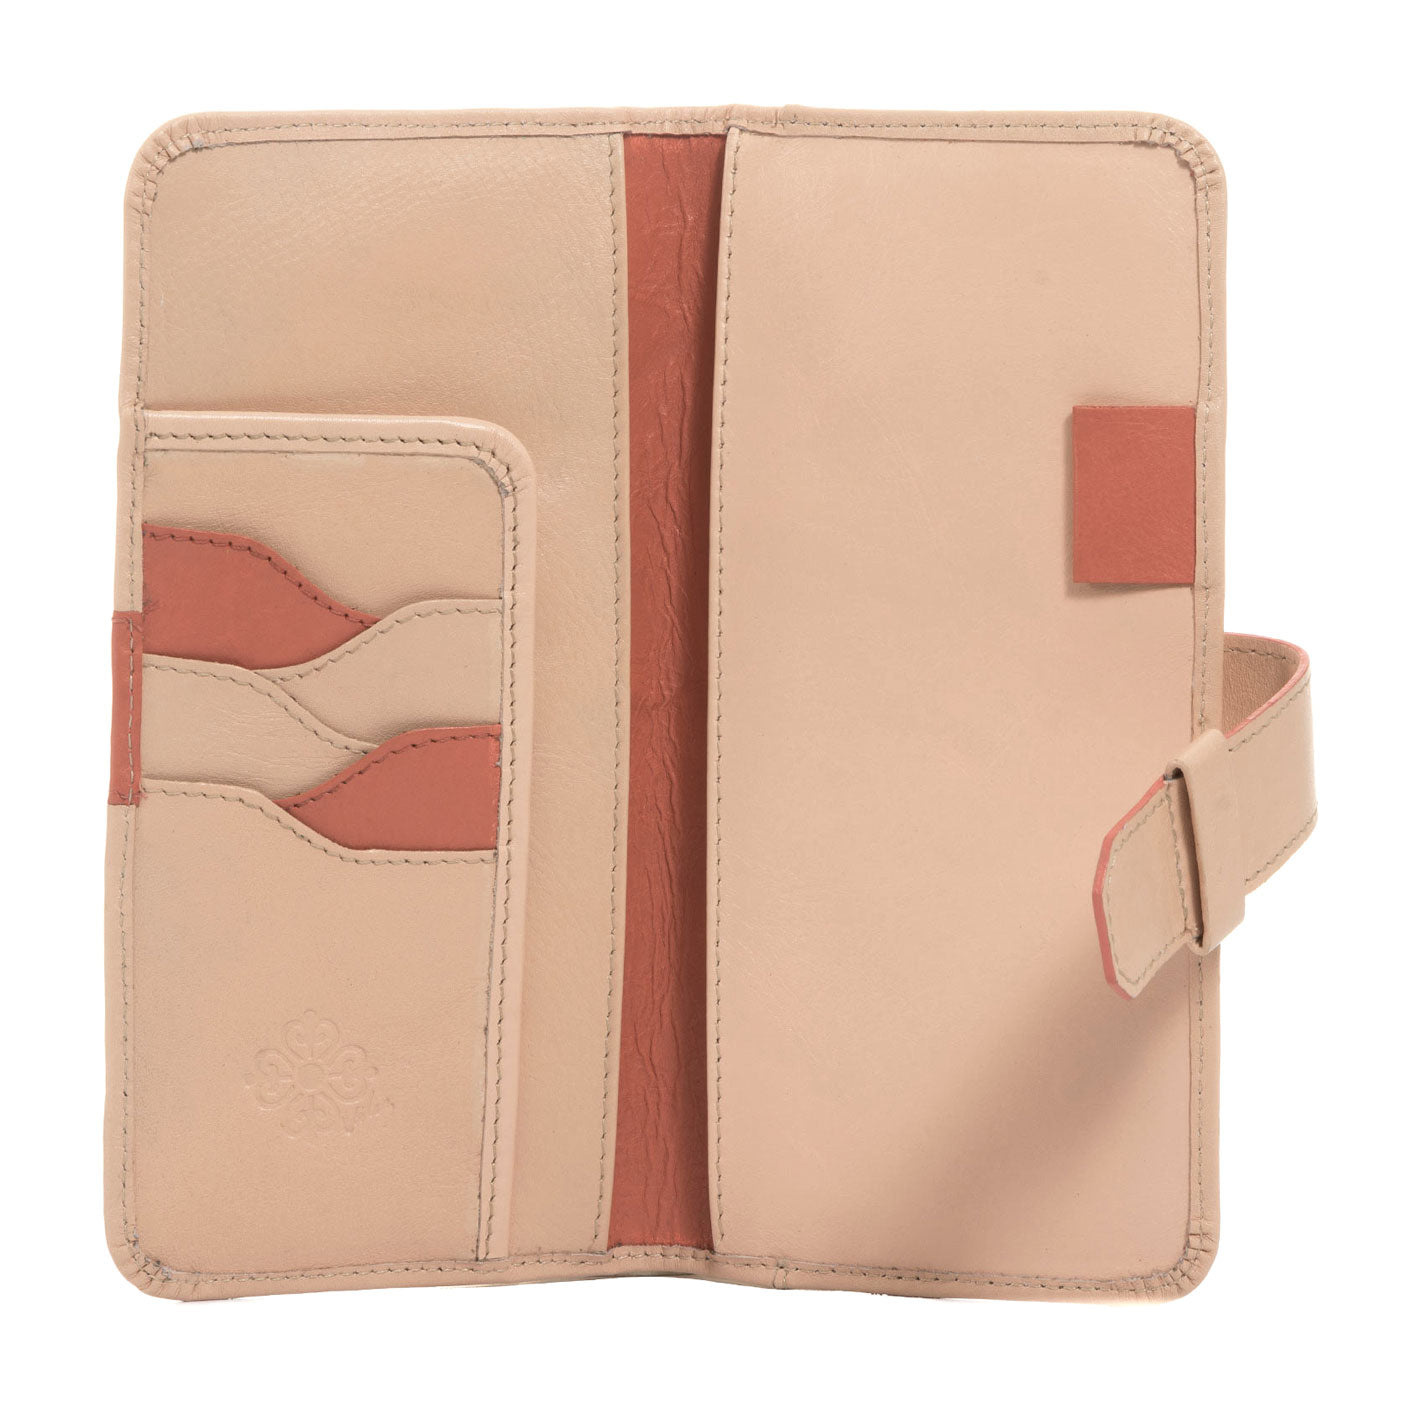 Velez 1020561 Geniune Leather Passport Holder